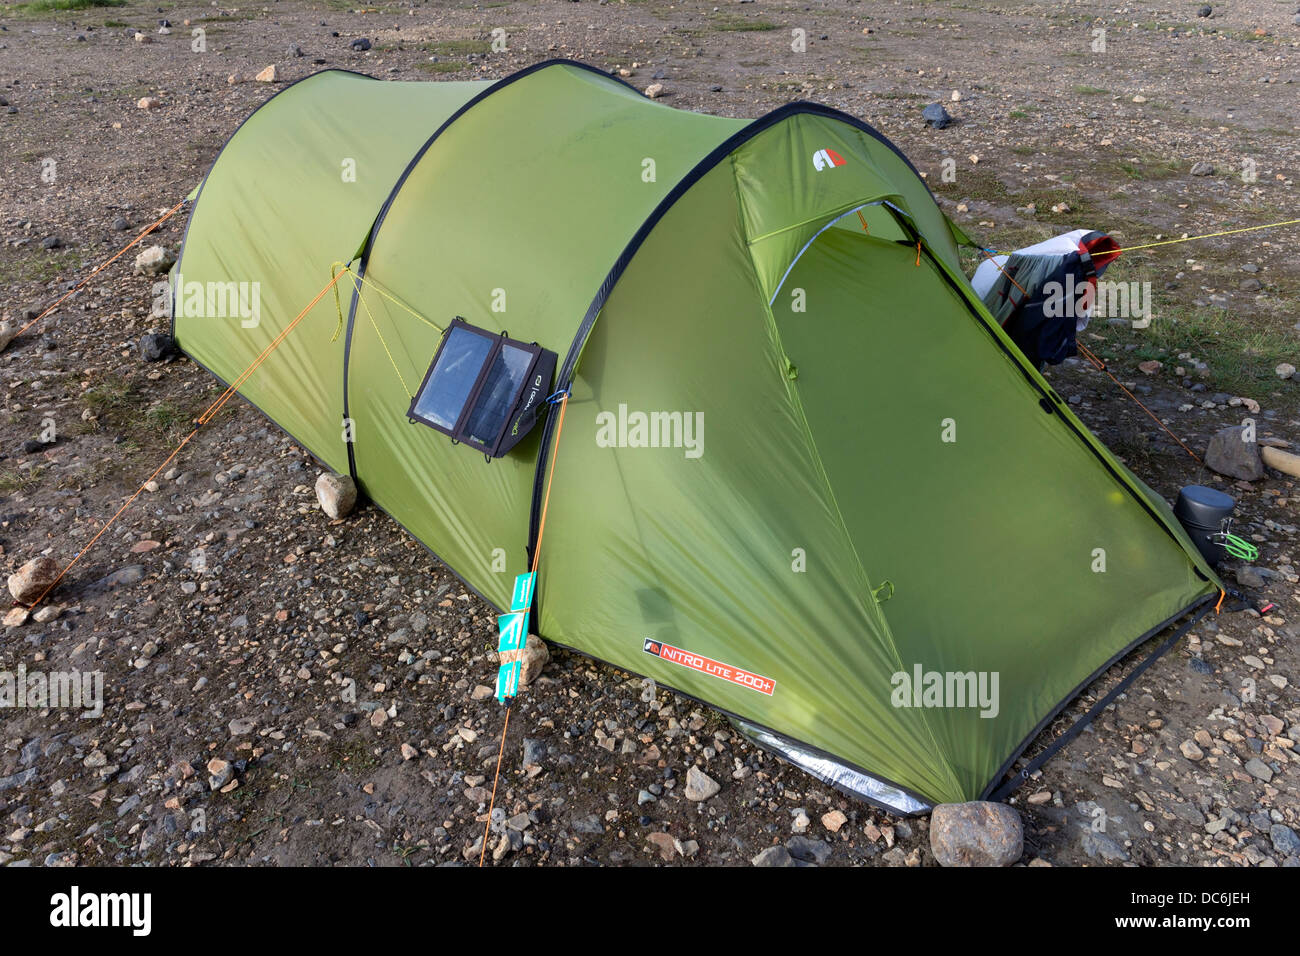 Tent with Solar Panel Attached & Tent with Solar Panel Attached Stock Photo: 59153209 - Alamy